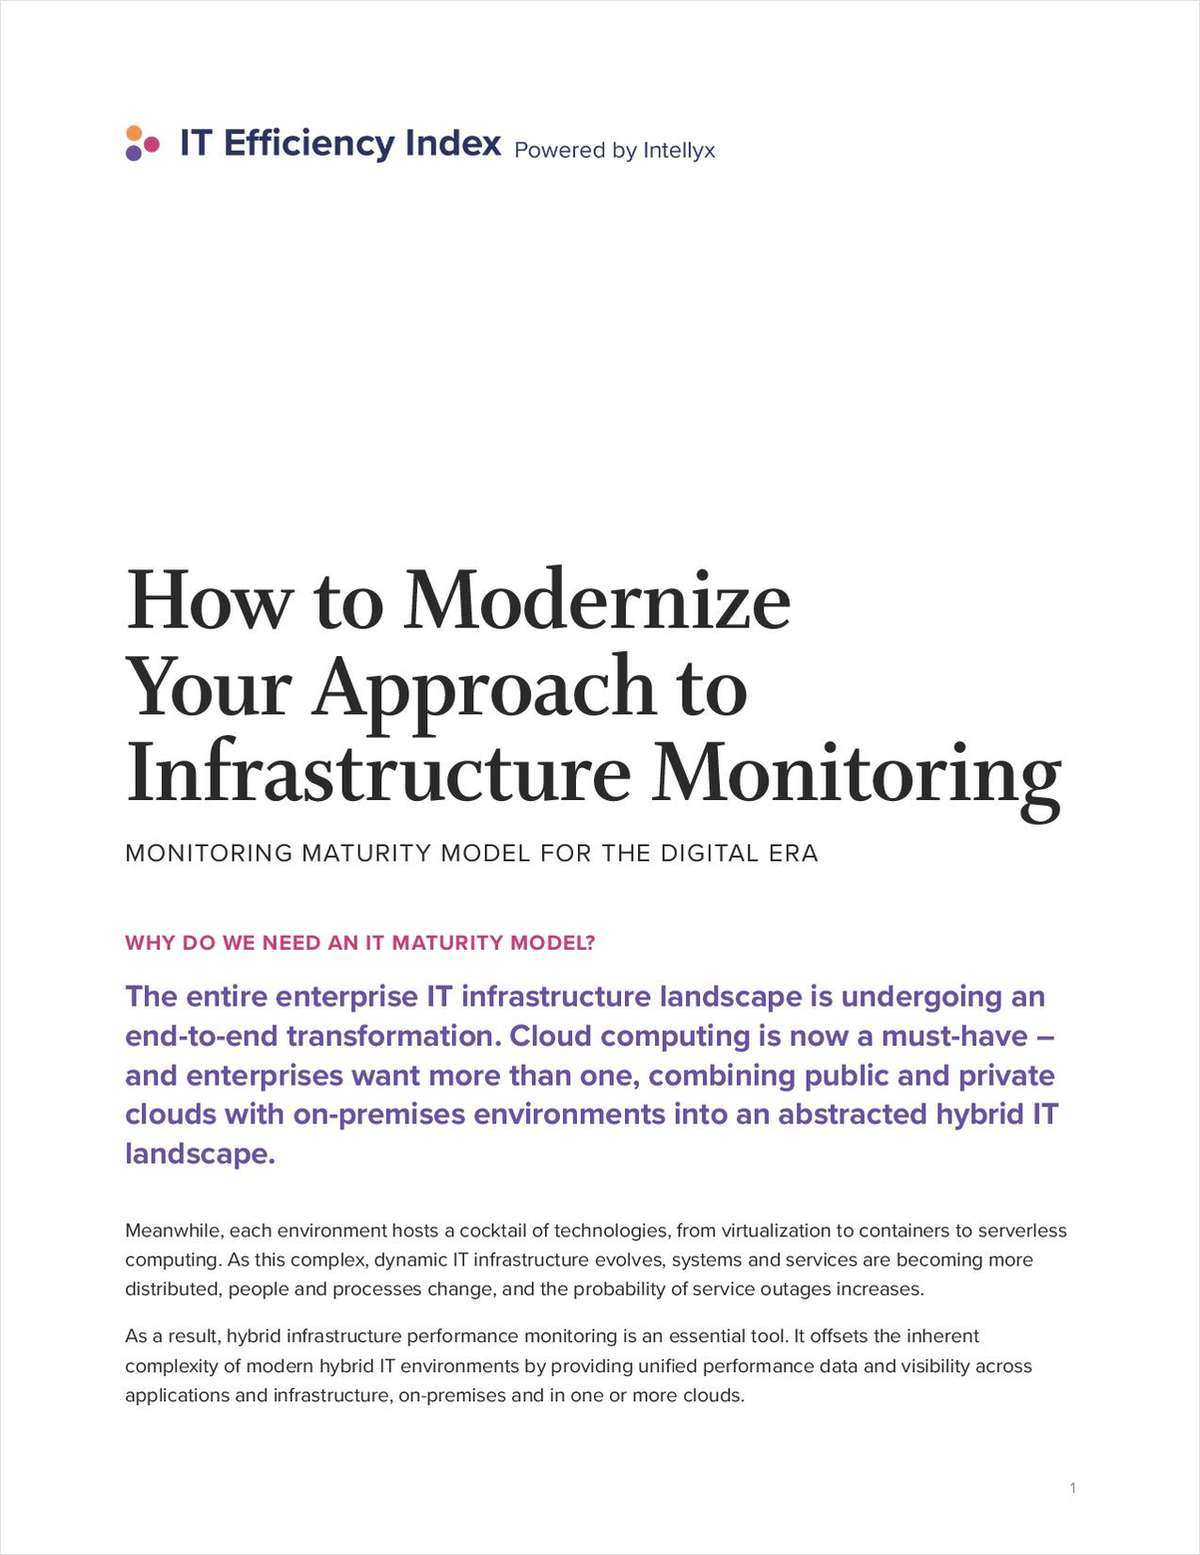 How to Modernize Your Approach to Infrastructure Monitoring